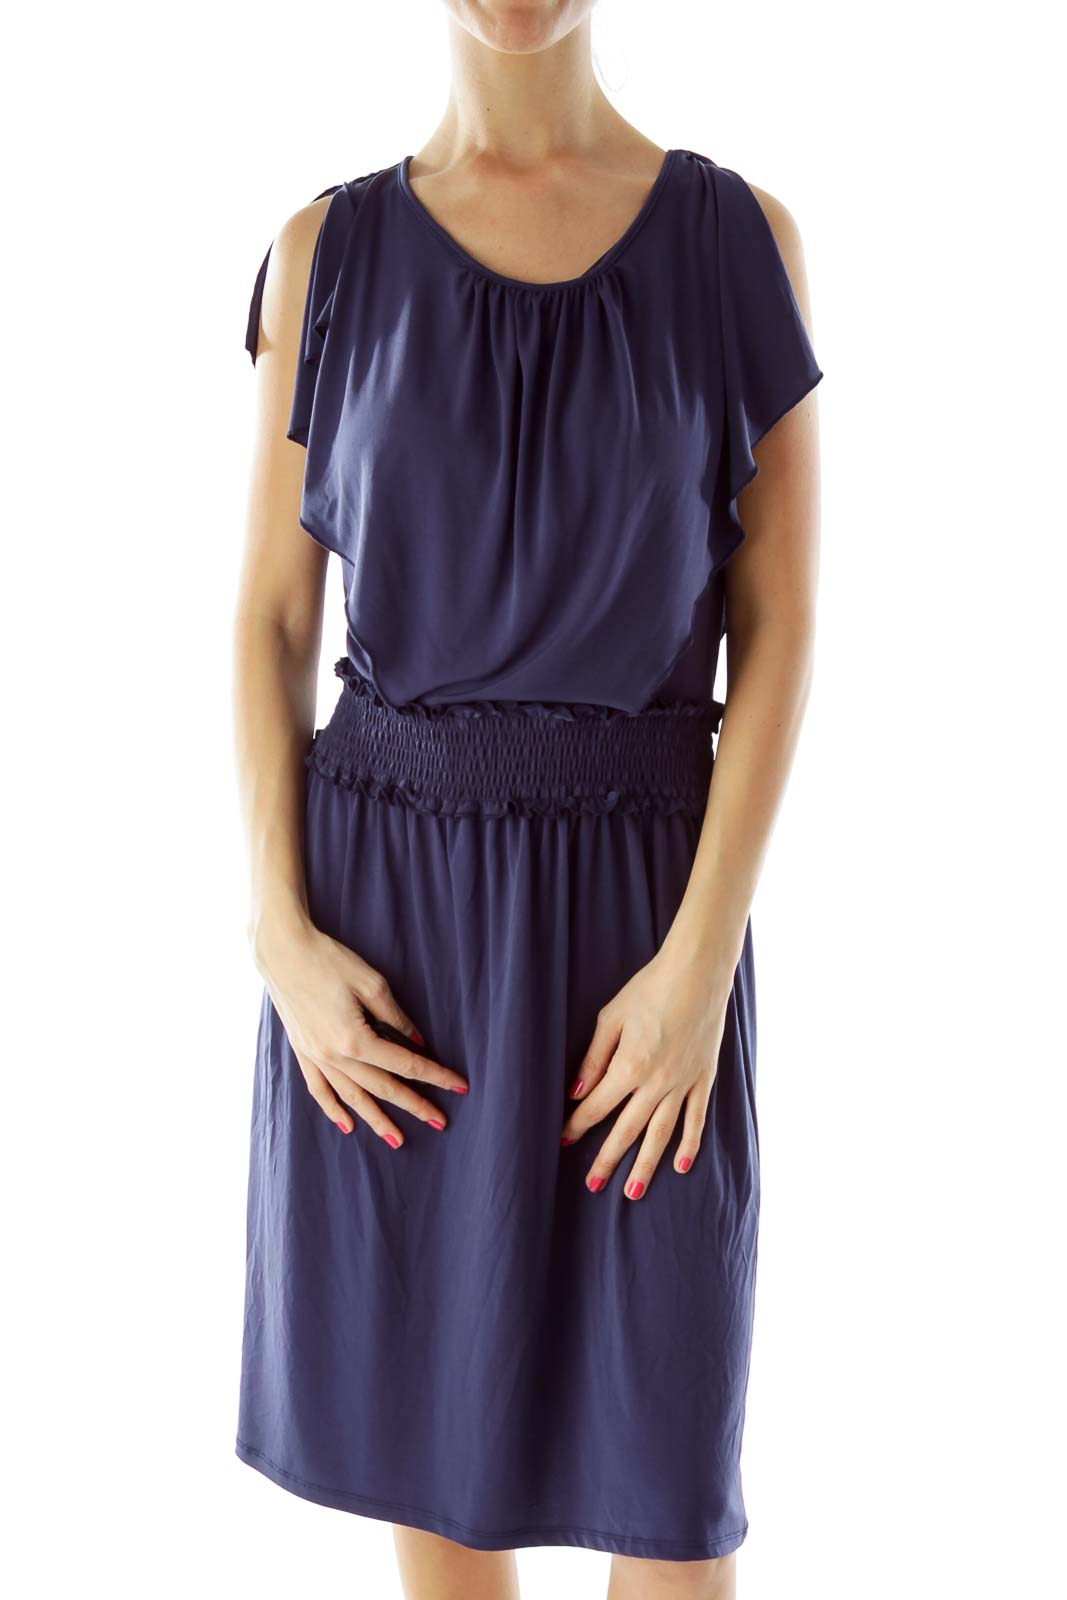 Navy Scrunched Ruffled Day Dress